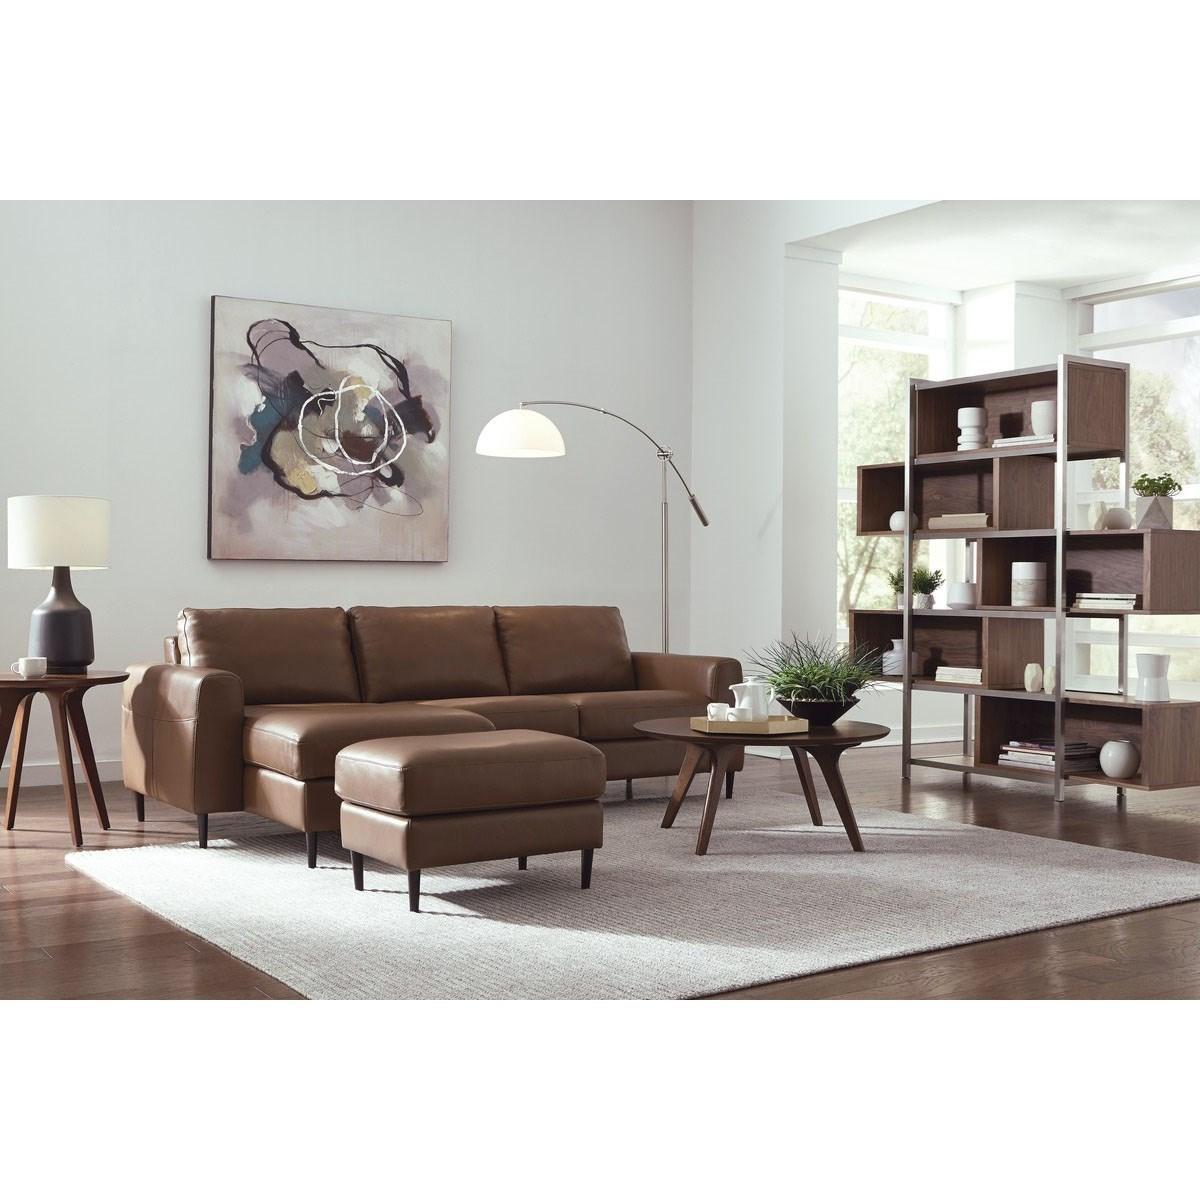 Atticus Living Room Group by Palliser at Esprit Decor Home Furnishings